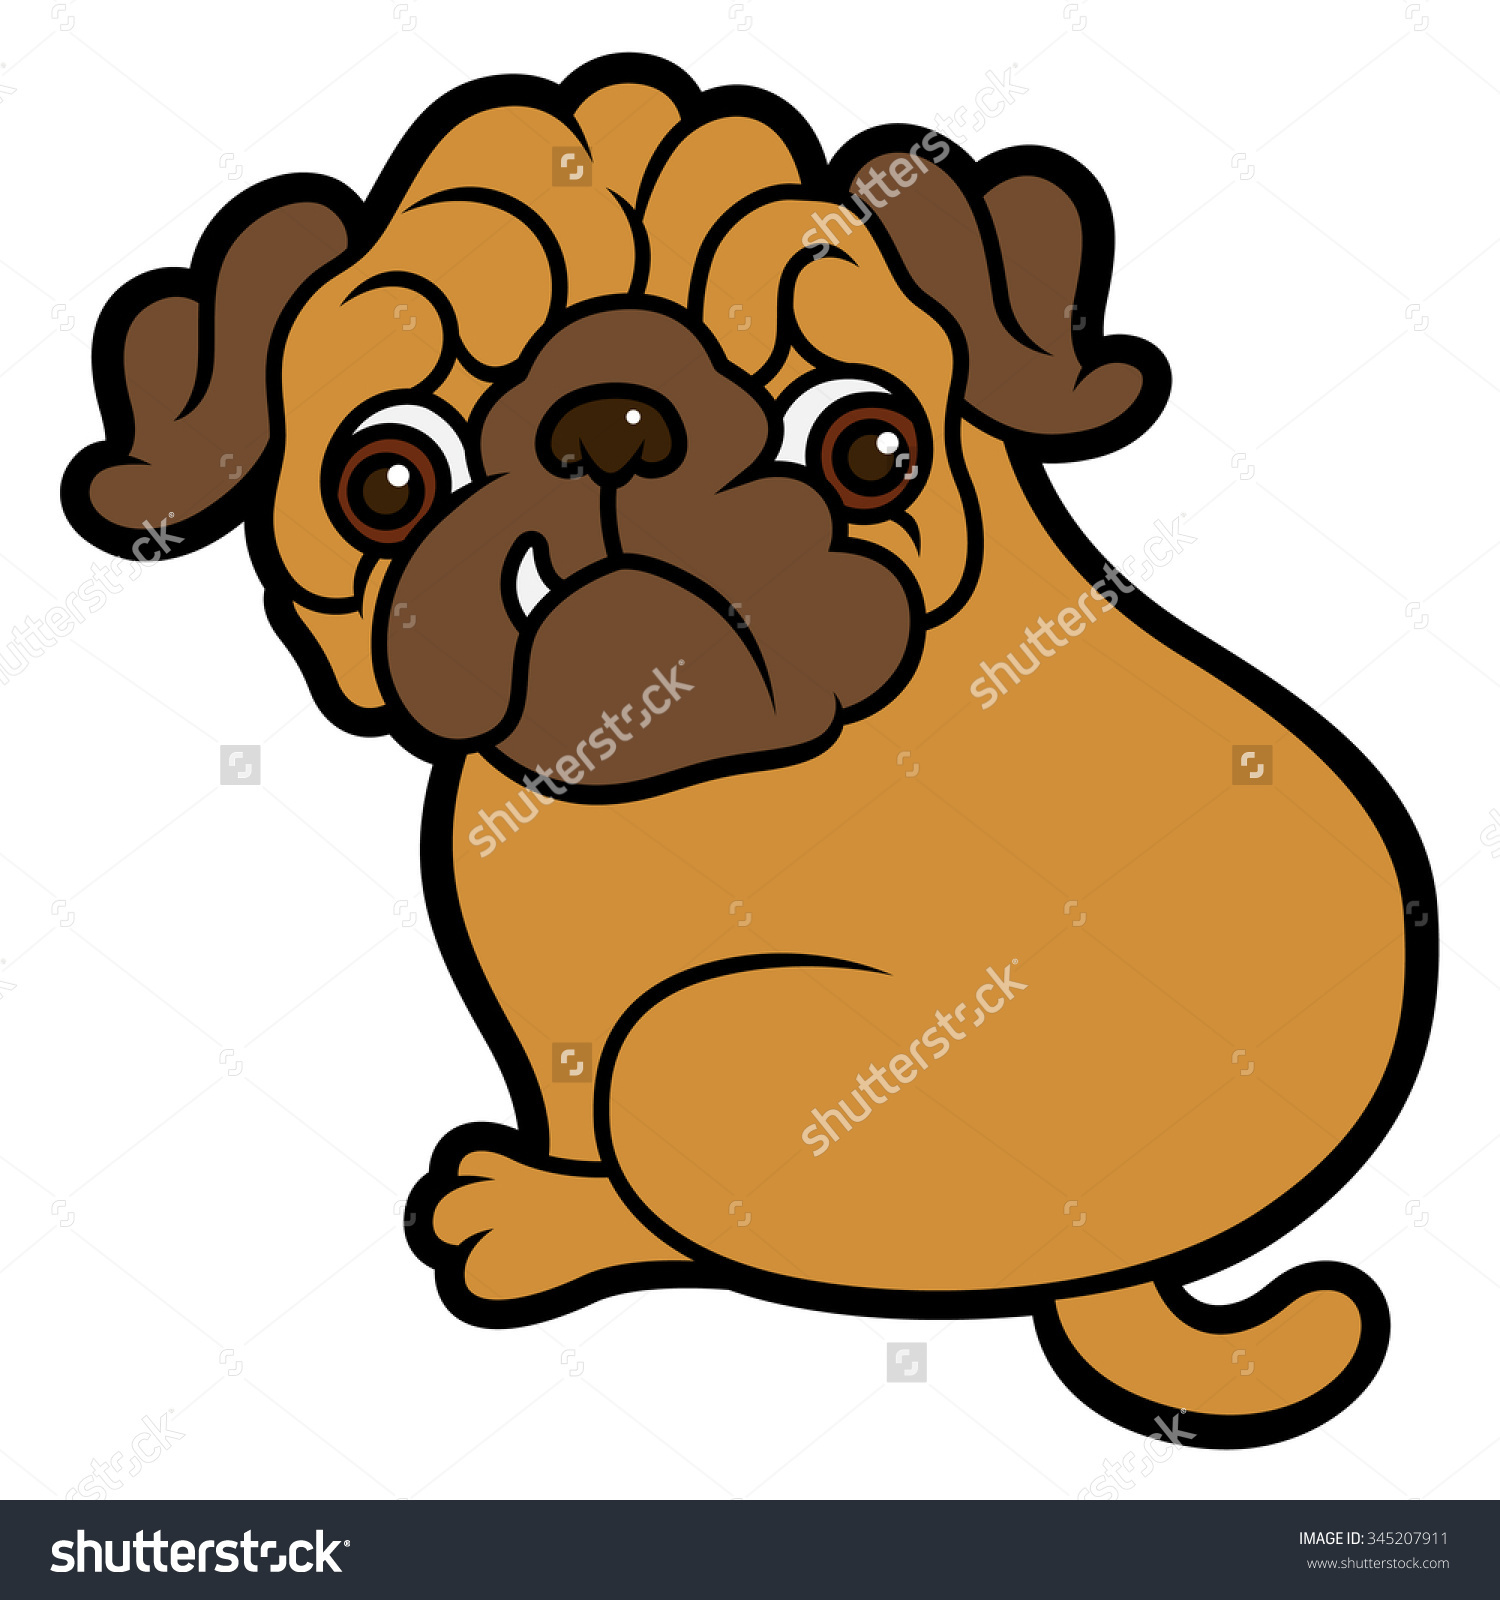 Clipart Purebred Dog Transparent.